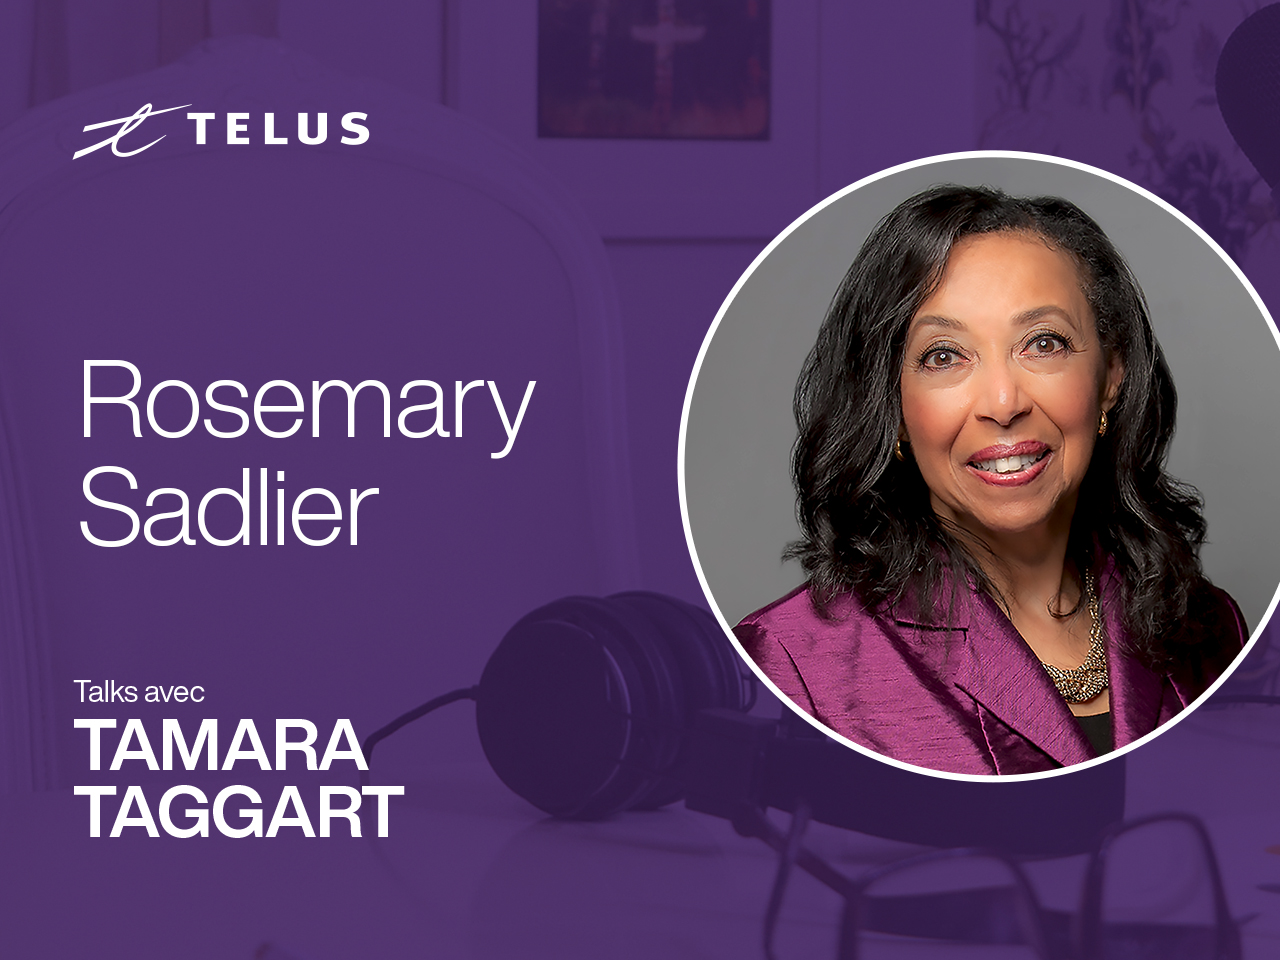 Author, educator and past president of the Ontario Black History Society, Rosemary Sadlier